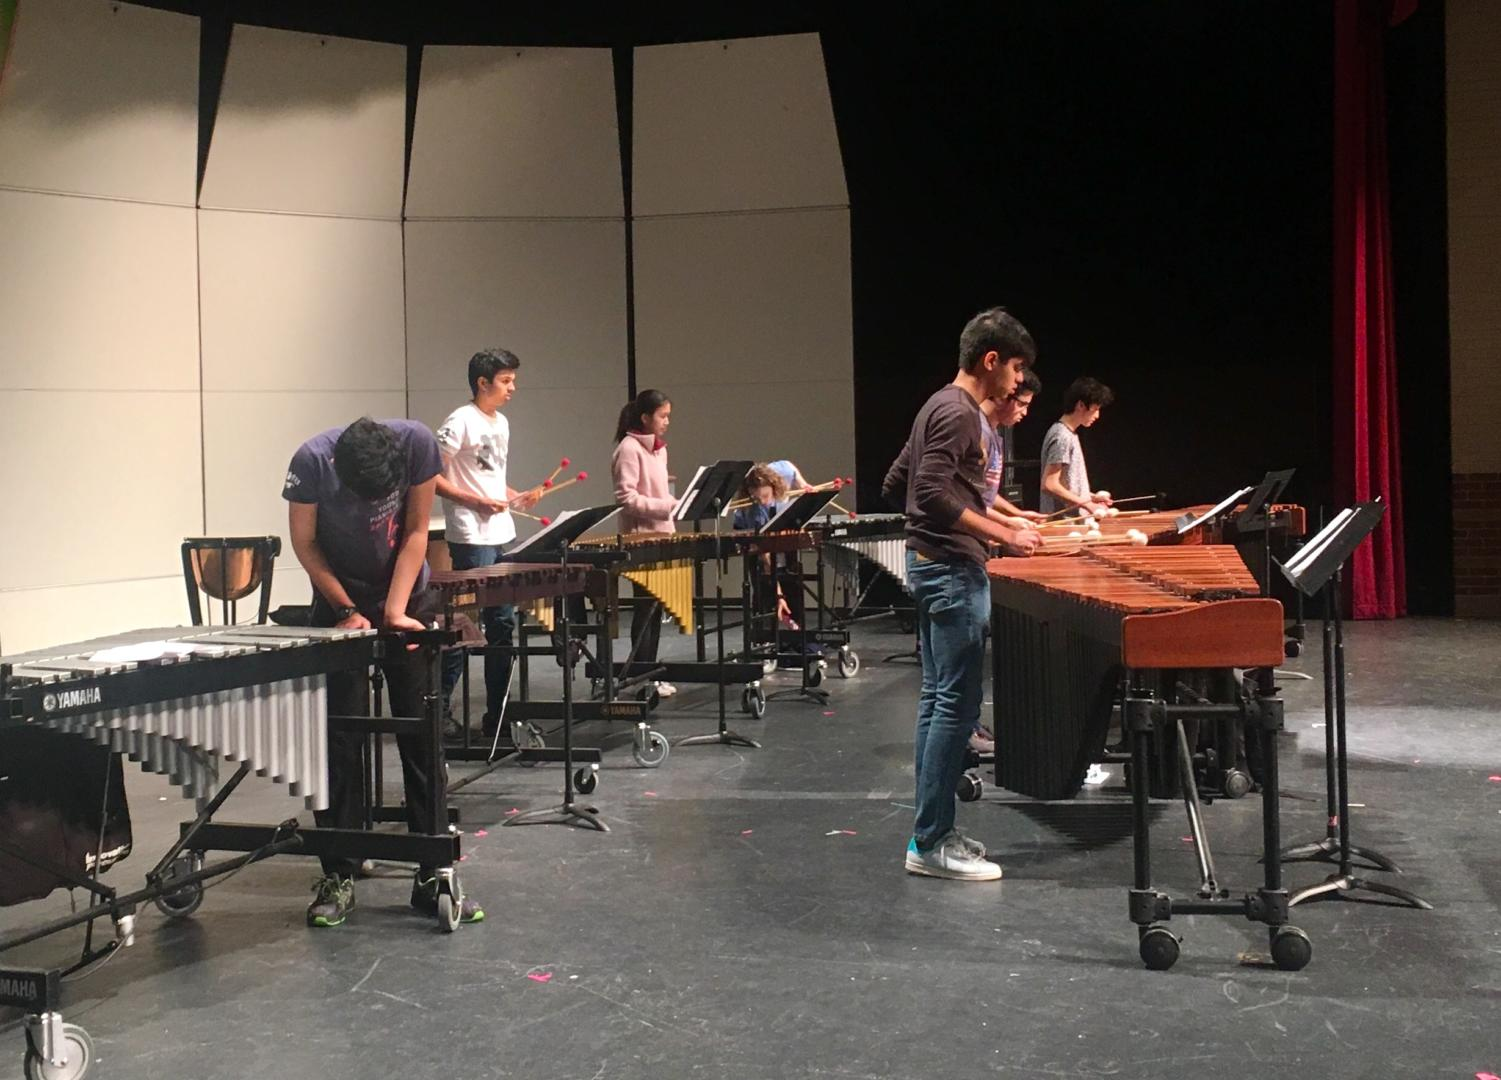 Coppell High School percussionists prepare for their rehearsal for Purely Rhythmic, an annual show and fundraiser on March 7. The show starts at 7 p.m., and admission is $8 for adults and $5 for students.